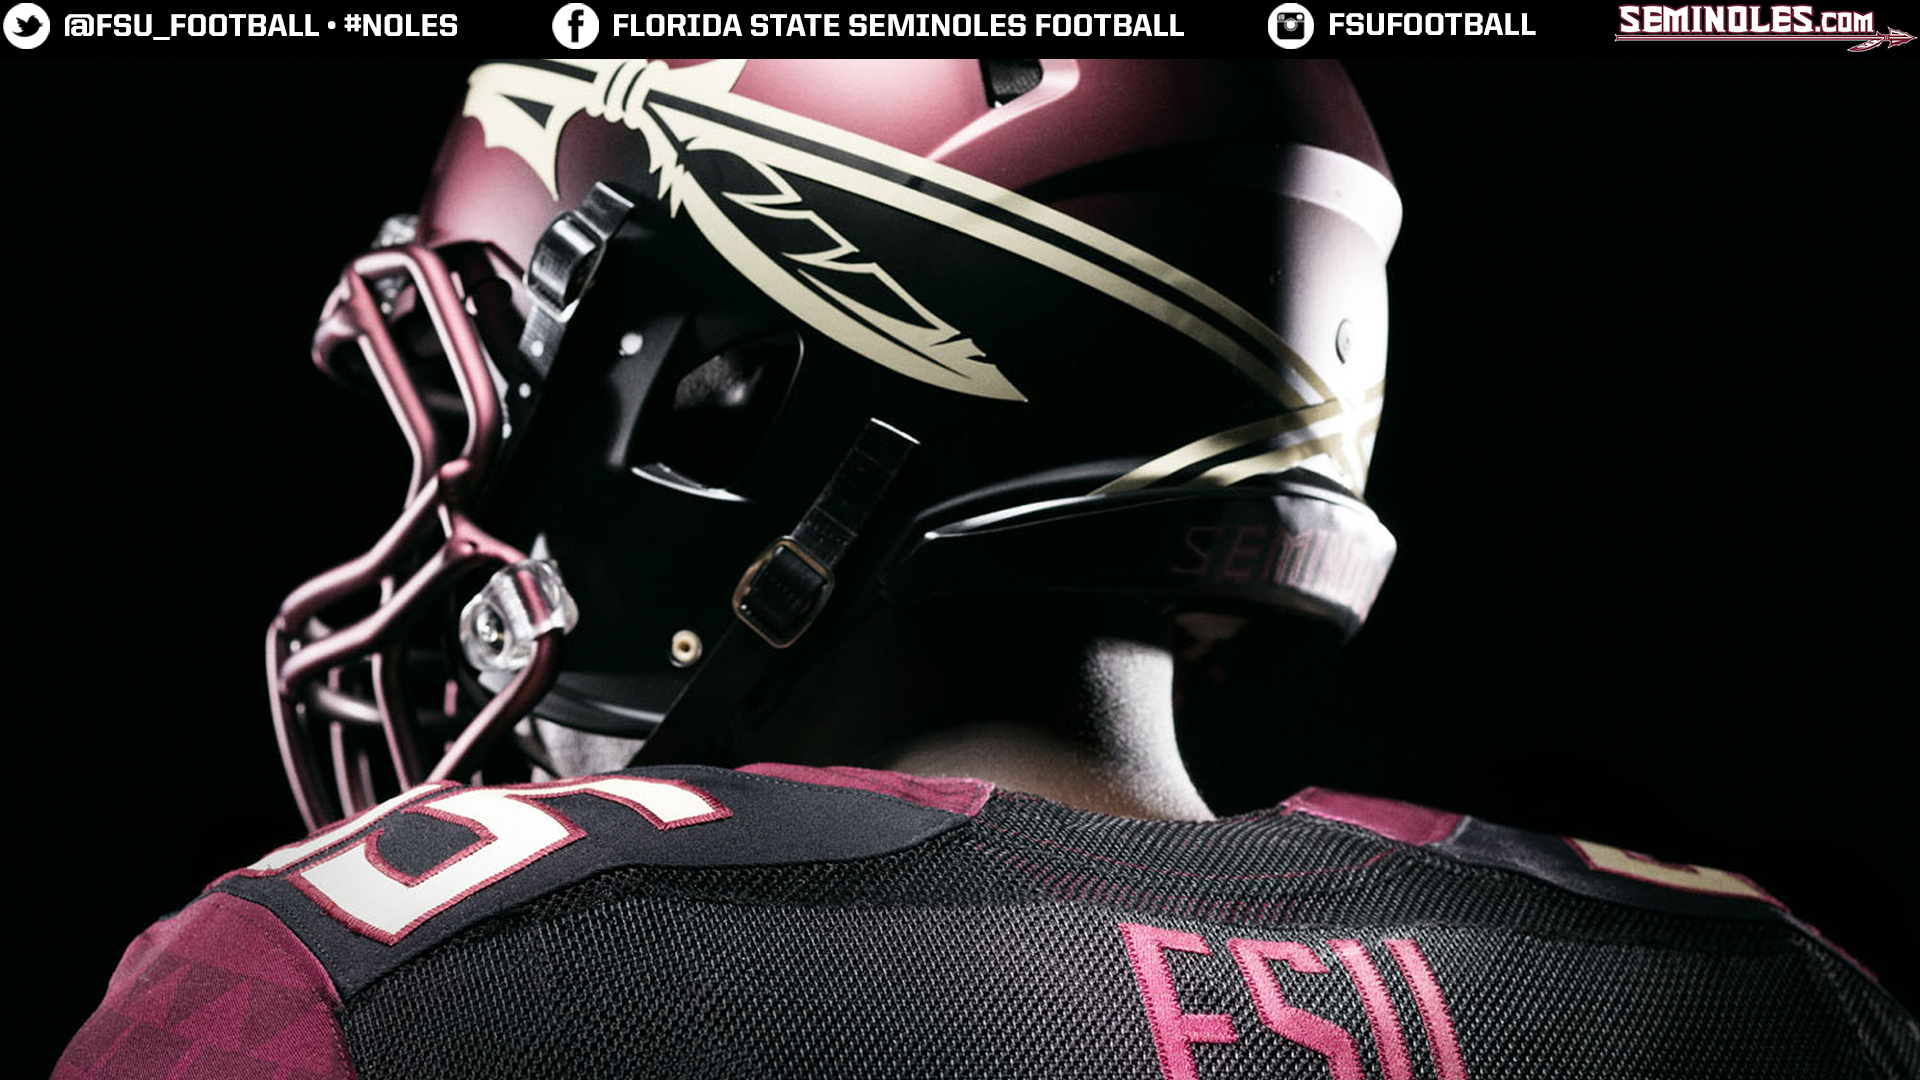 Seminoles desktop wallpapers widescreenfootball2 voltagebd Image collections